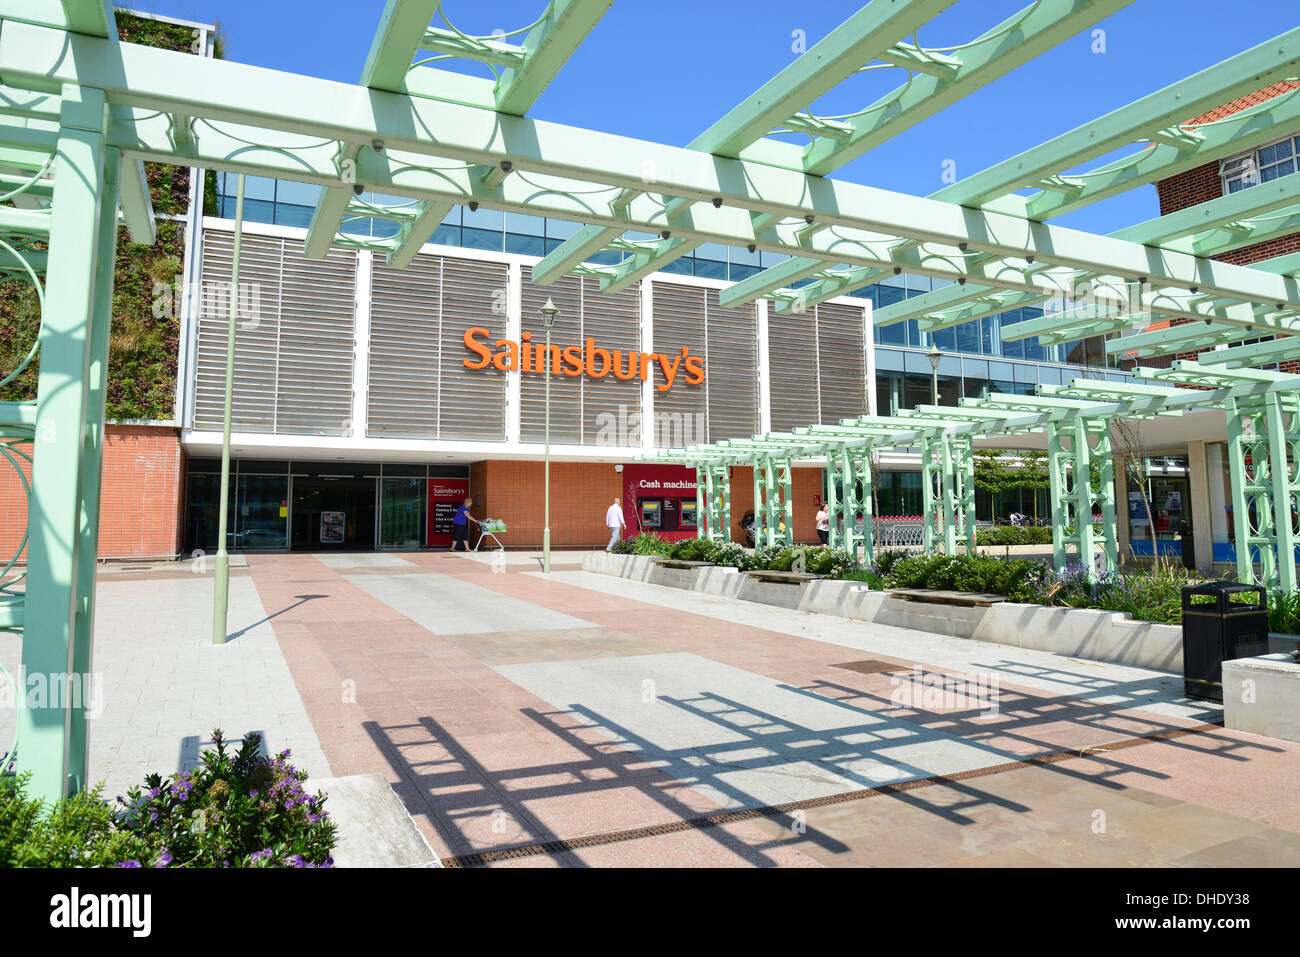 Nice Sainsburys Supermarket Church Road Welwyn Garden City Stock  With Exciting Sainsburys Supermarket Church Road Welwyn Garden City Hertfordshire  England United Kingdom With Extraordinary Store More Garden Buildings Ltd Also Trinity Gardens Newcastle Quayside In Addition Large Garden Table And Garden Hose Holder As Well As Regency Gardens Additionally Logo Garden From Alamycom With   Exciting Sainsburys Supermarket Church Road Welwyn Garden City Stock  With Extraordinary Sainsburys Supermarket Church Road Welwyn Garden City Hertfordshire  England United Kingdom And Nice Store More Garden Buildings Ltd Also Trinity Gardens Newcastle Quayside In Addition Large Garden Table From Alamycom